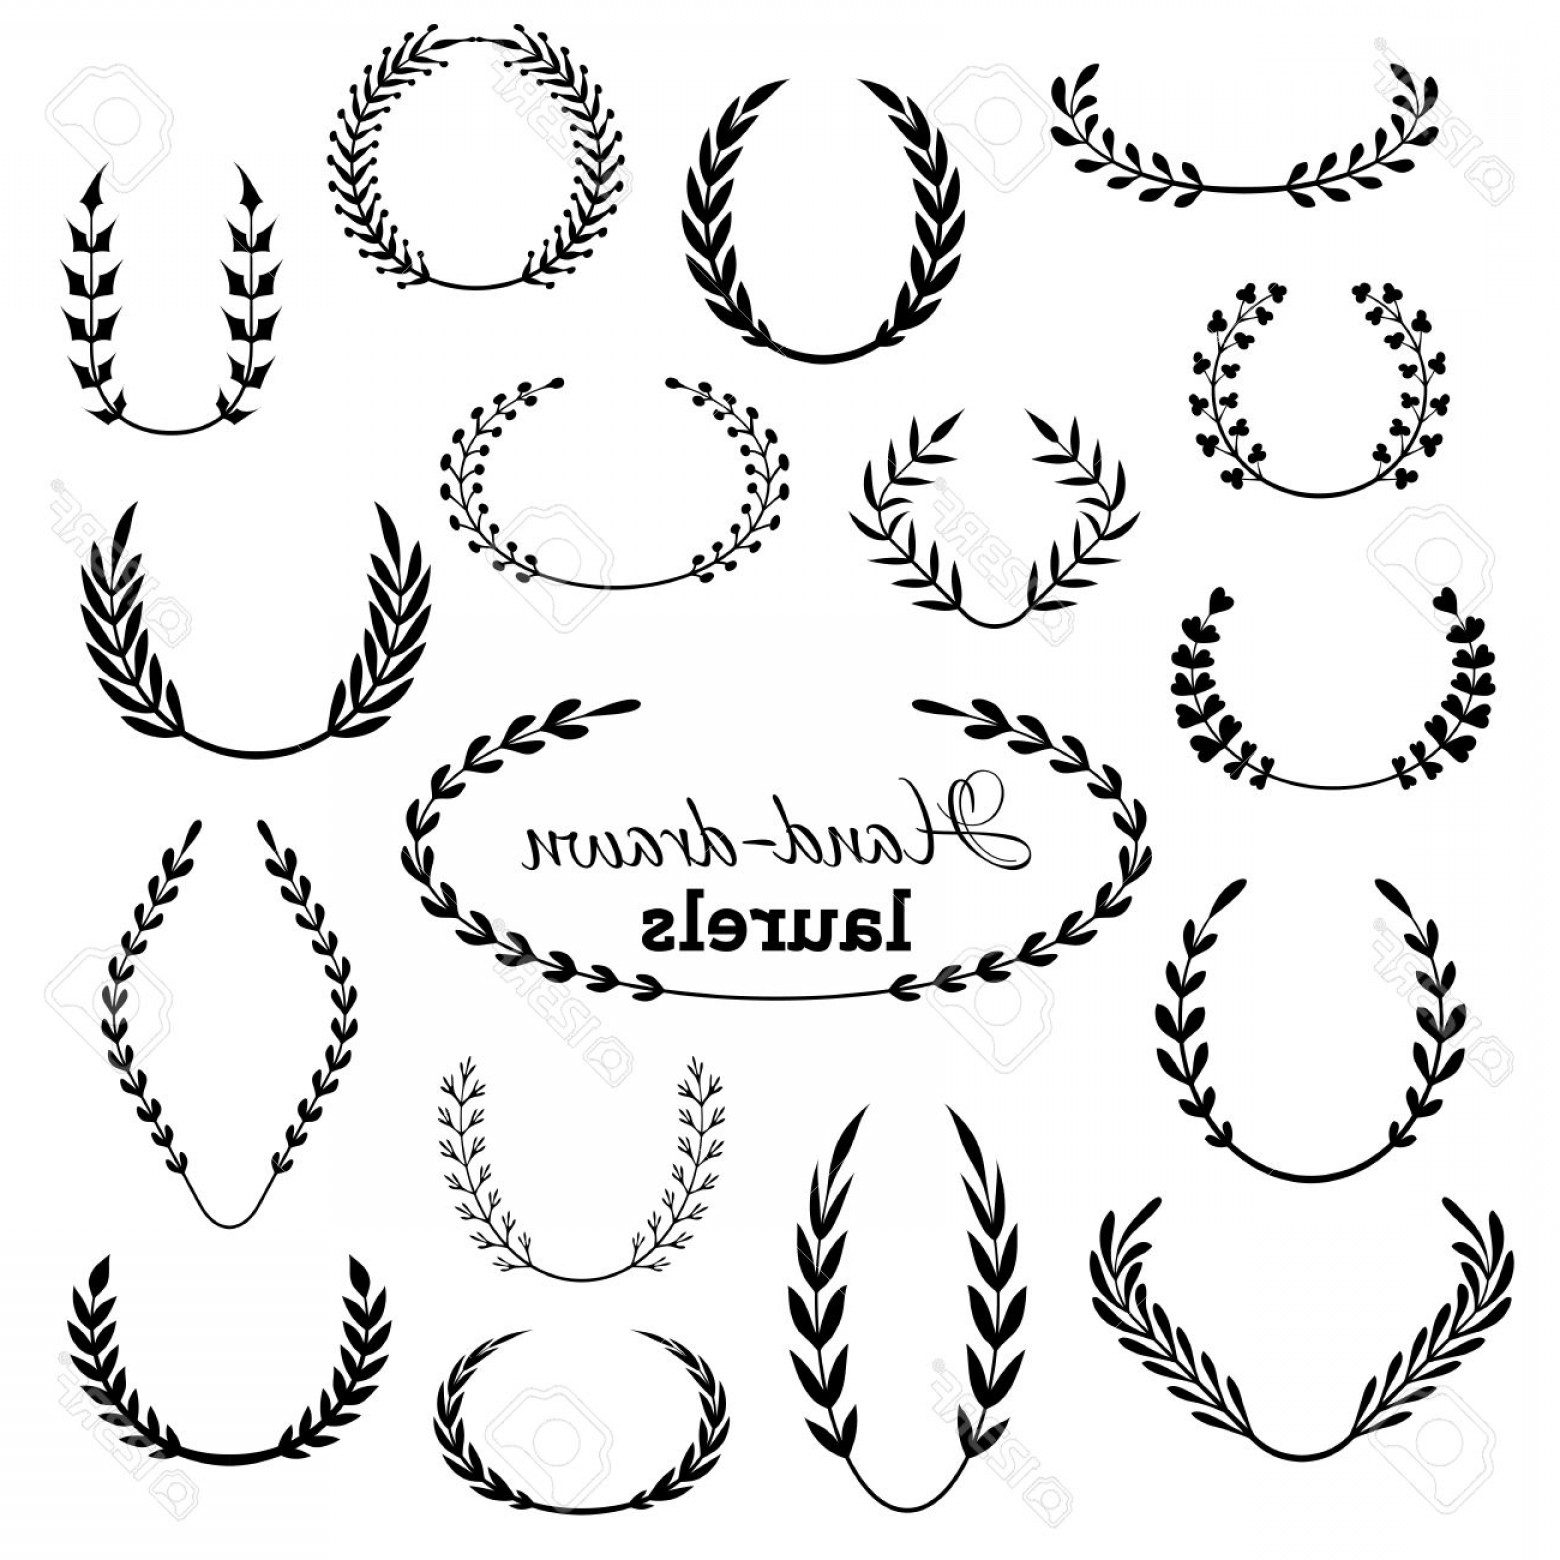 Hand Drawn Laurel Vector: Photostock Vector Vector Set Of Laurel Wreaths Hand Drawn Design Elements Isolated On White Background